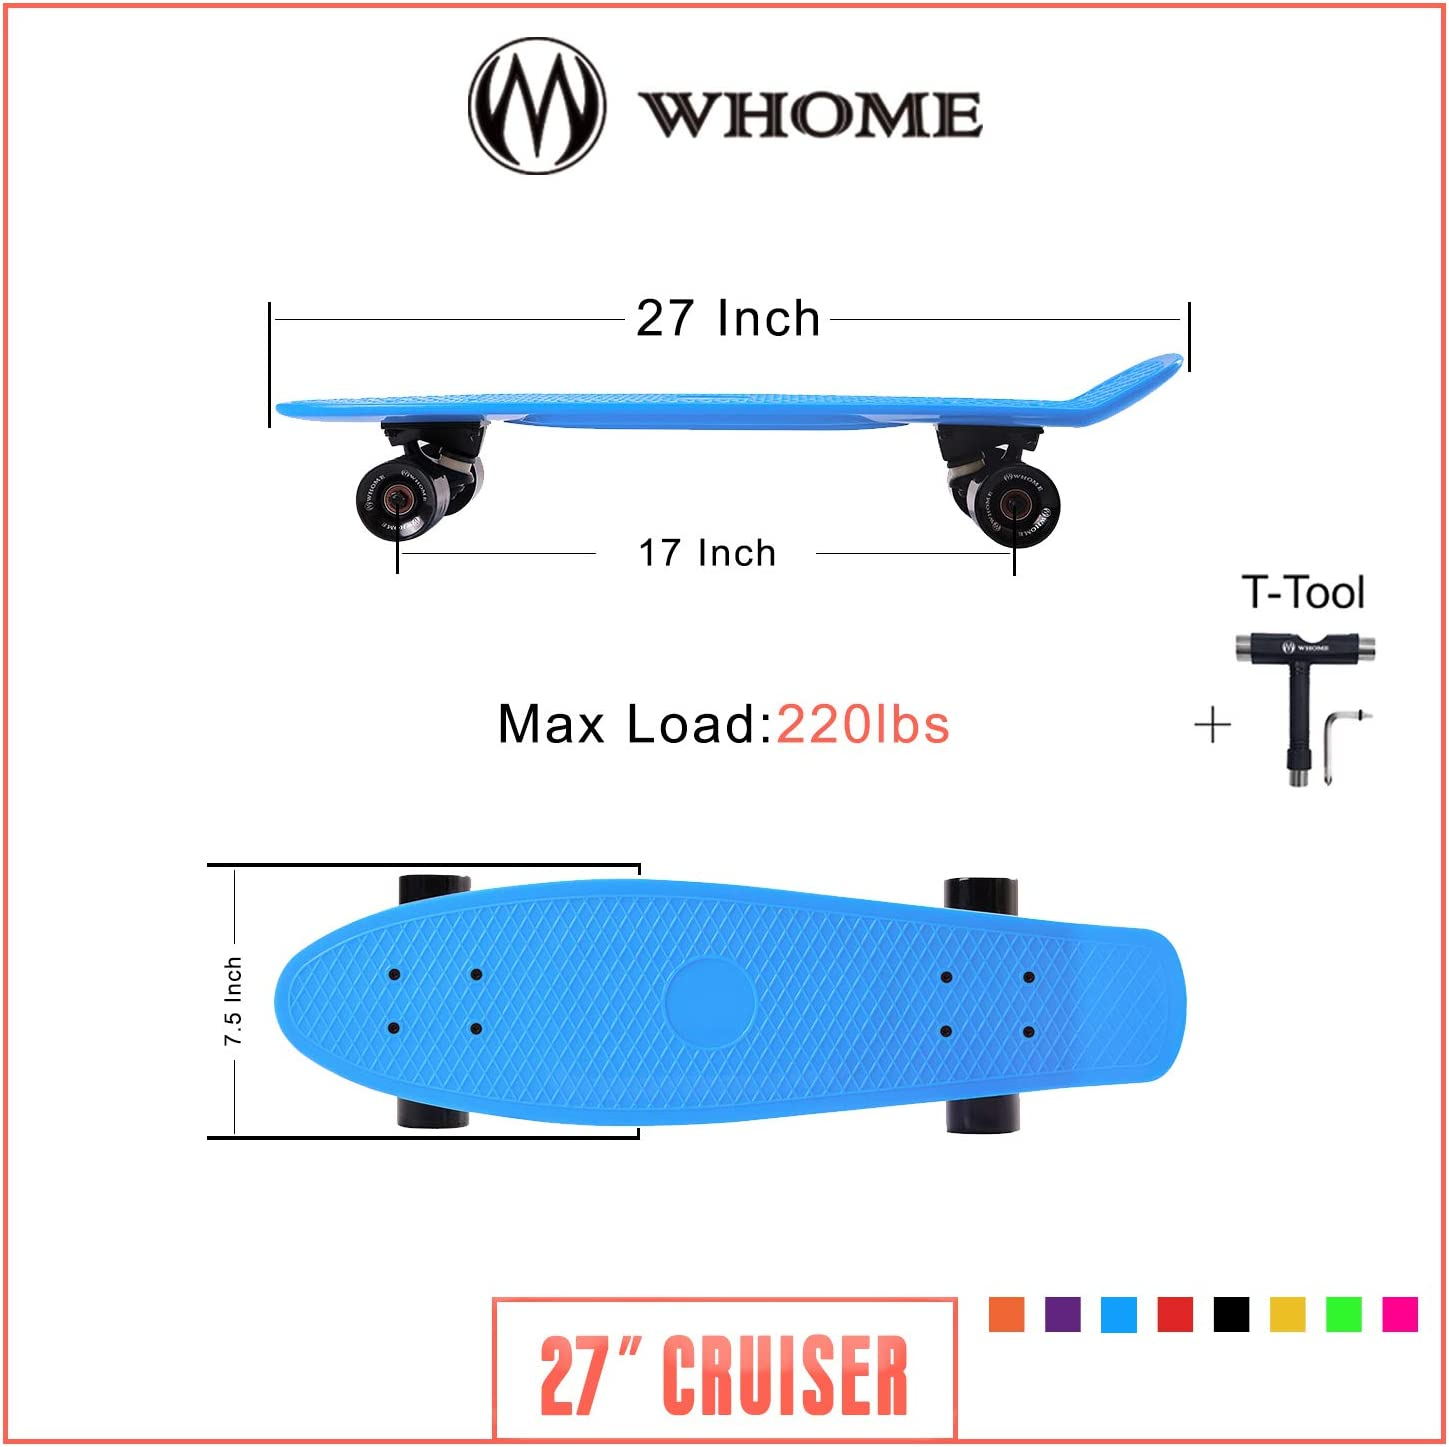 WHOME Skateboard Complete for Adults and Beginners 27 Inch Cruiser Skateboard Complete for Cruising Commuting Rolling Around T-Tool Included